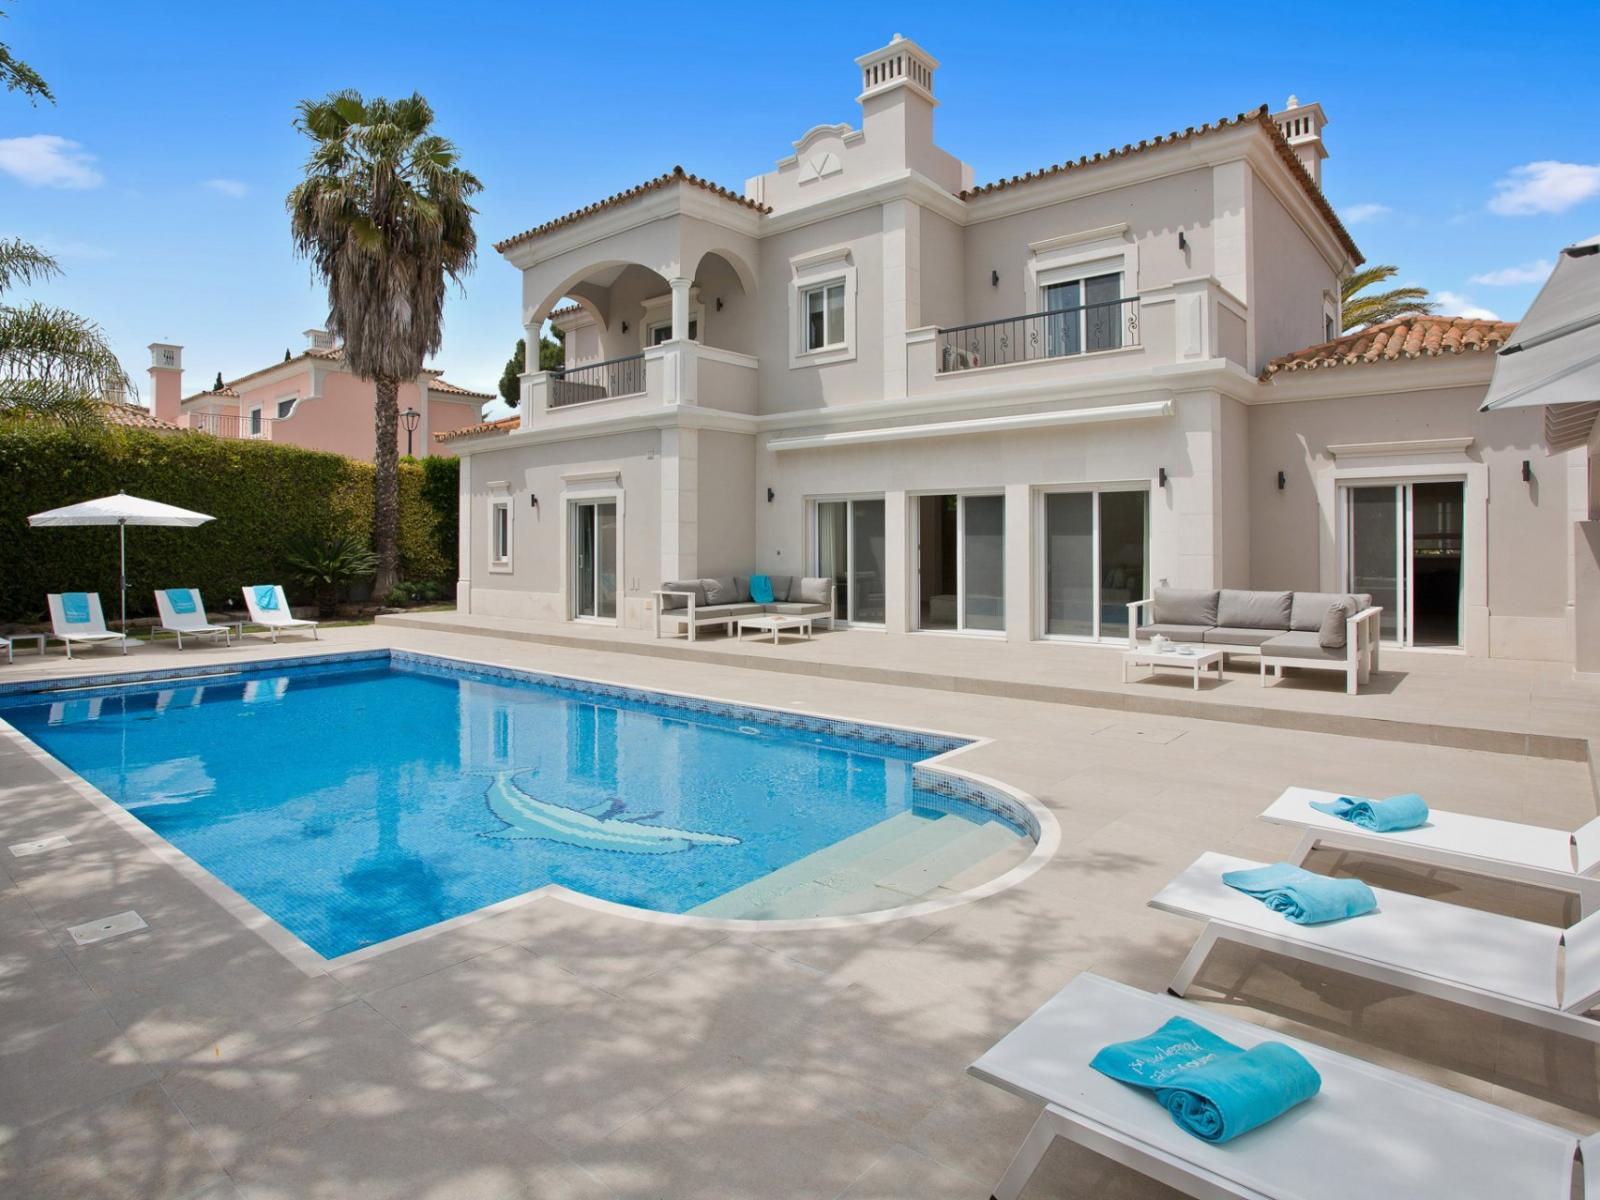 Luxury Villas With Pool, Holiday Apartments For Rent In Algarve